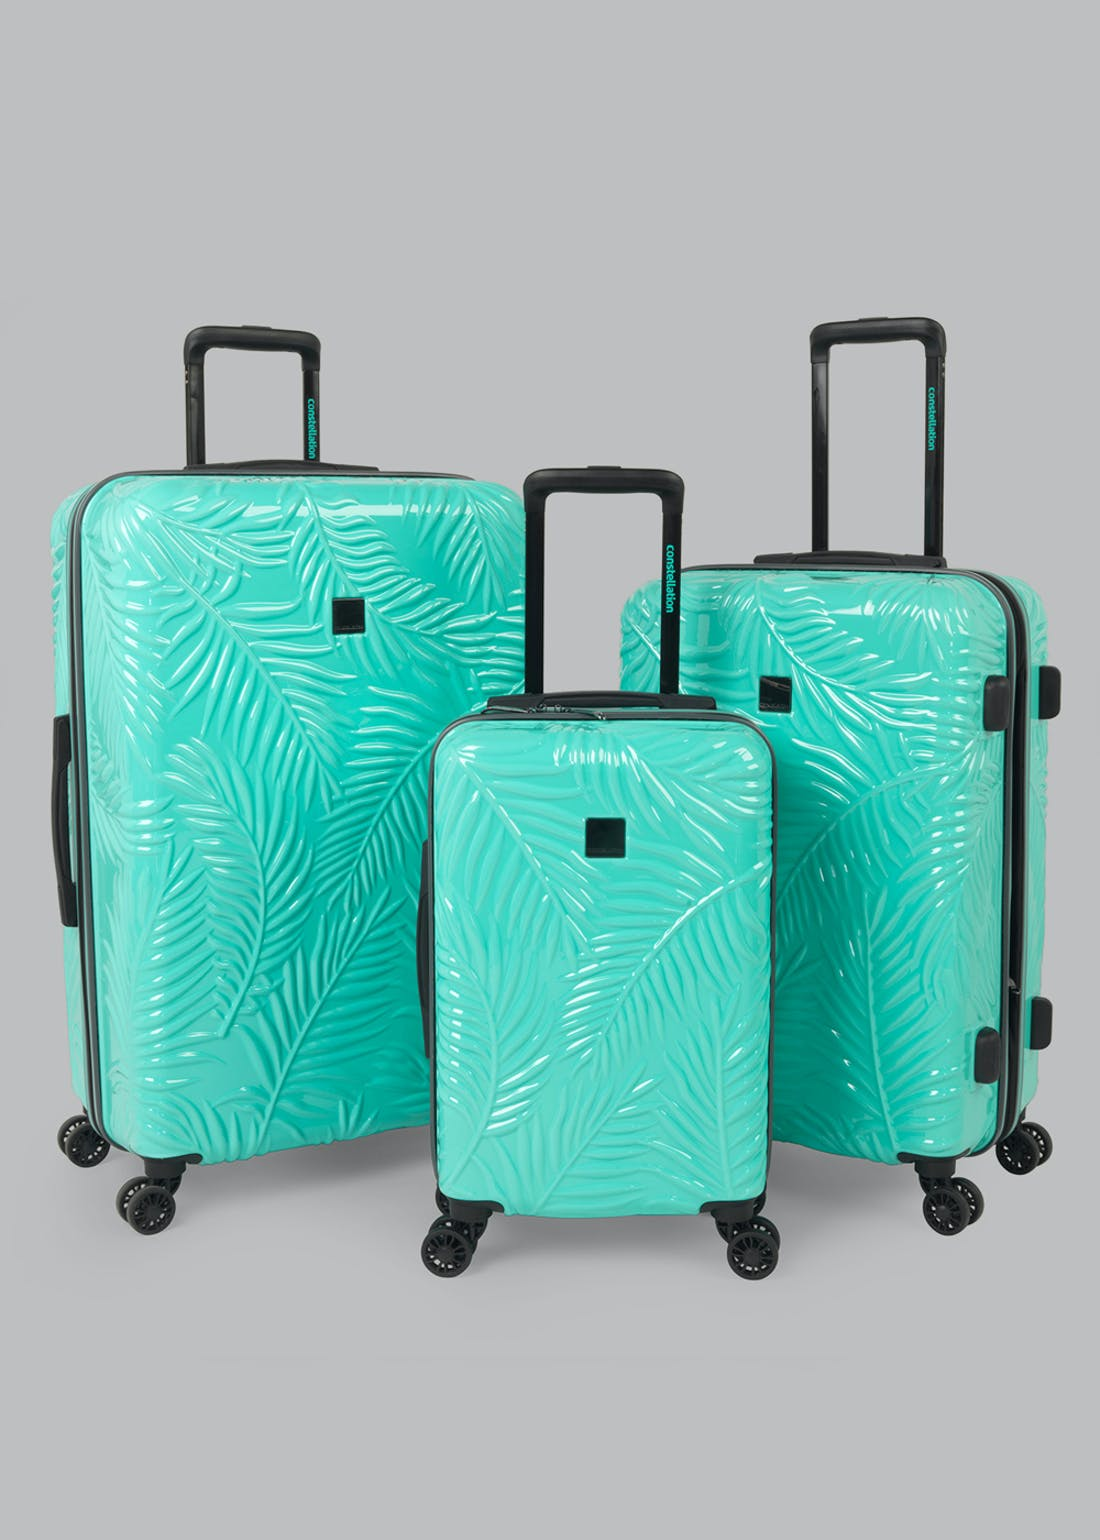 Constellation Heatwave Suitcase